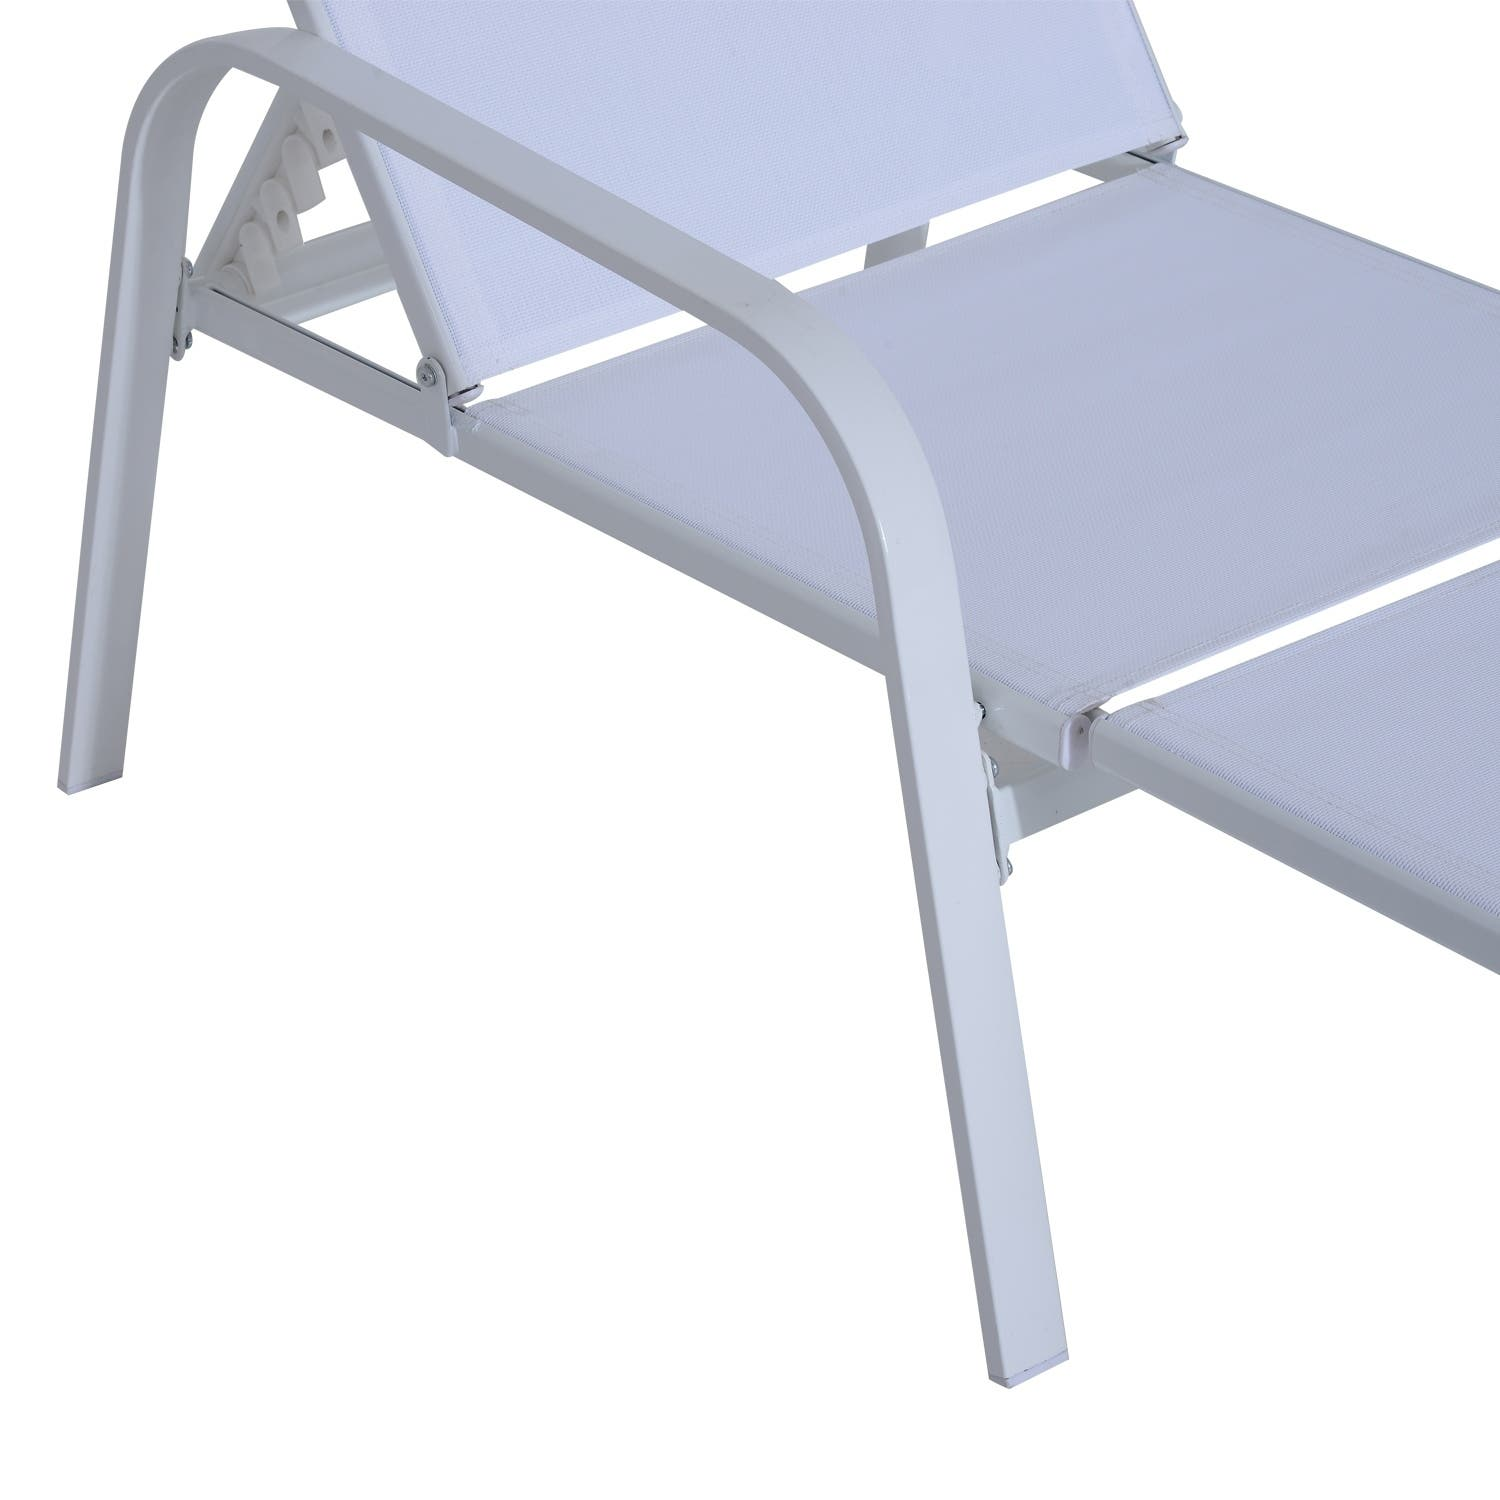 Patio dining chairs for less for Outdoor furniture 0 finance